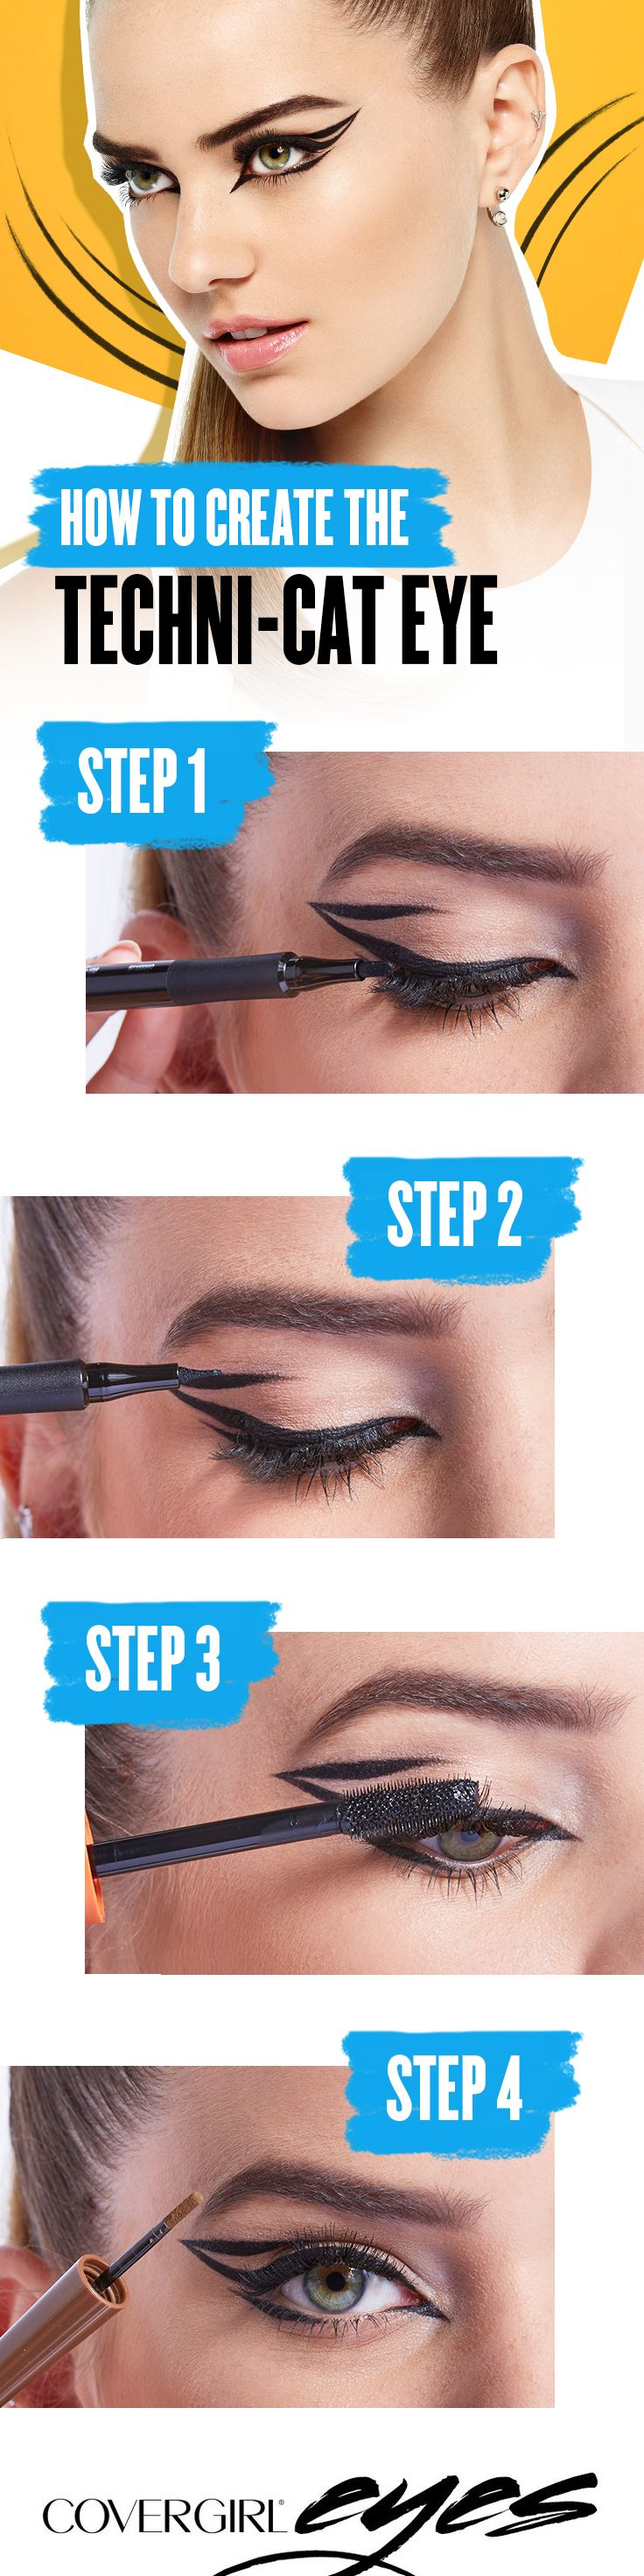 Create the perfect Techni-Cat eye using these 4 easy steps. Step 1: Create a baseline using COVERGIRL Intensify Me! Liner. Step 2: Build on this line and create a dramatic wing. Step 3: Load up your lashes and create instant volume using COVERGIRL LashBlast Mascara. Step 4: Then, add a pow to your brow using COVERGIRL Pow-Der Brow. COVERGIRL is the simple way to Draw Attention to your eyes.